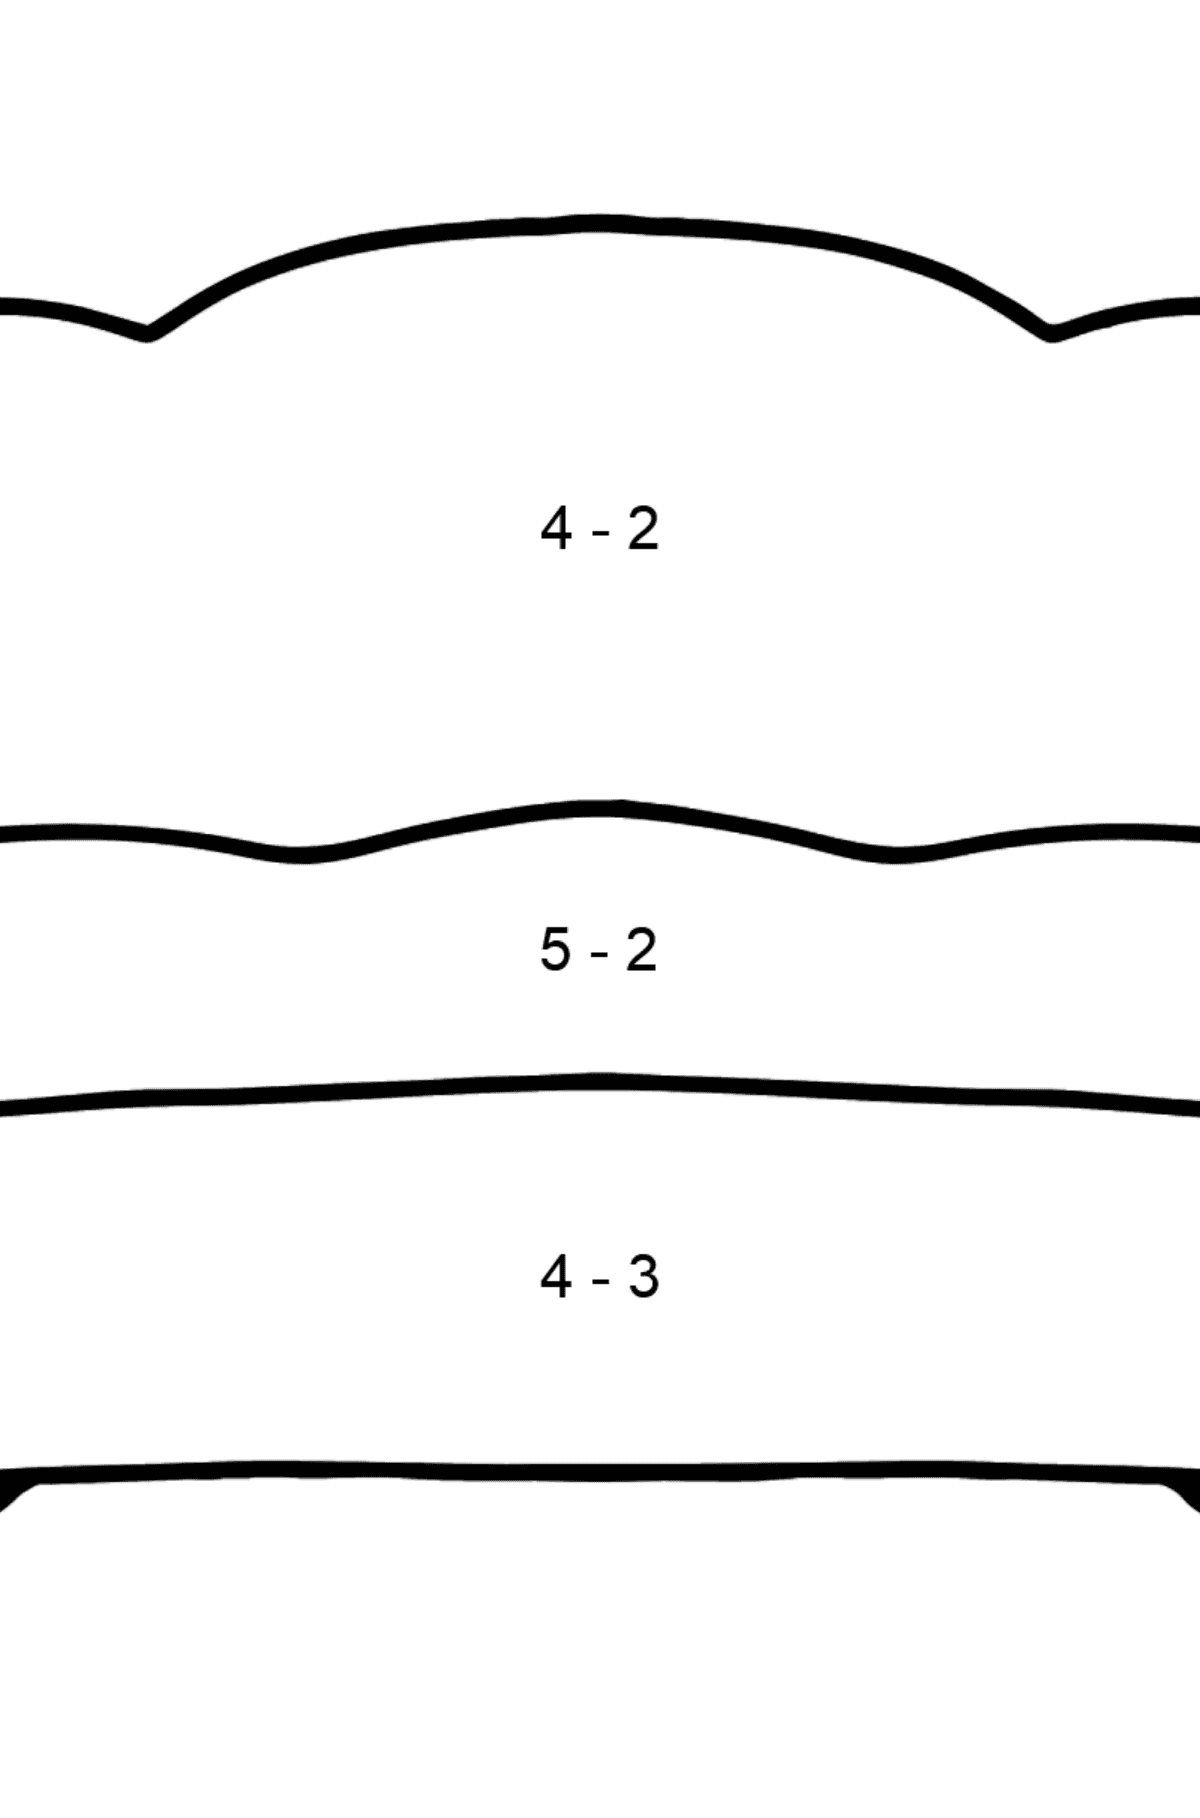 Red Sofa coloring page - Math Coloring - Subtraction for Kids